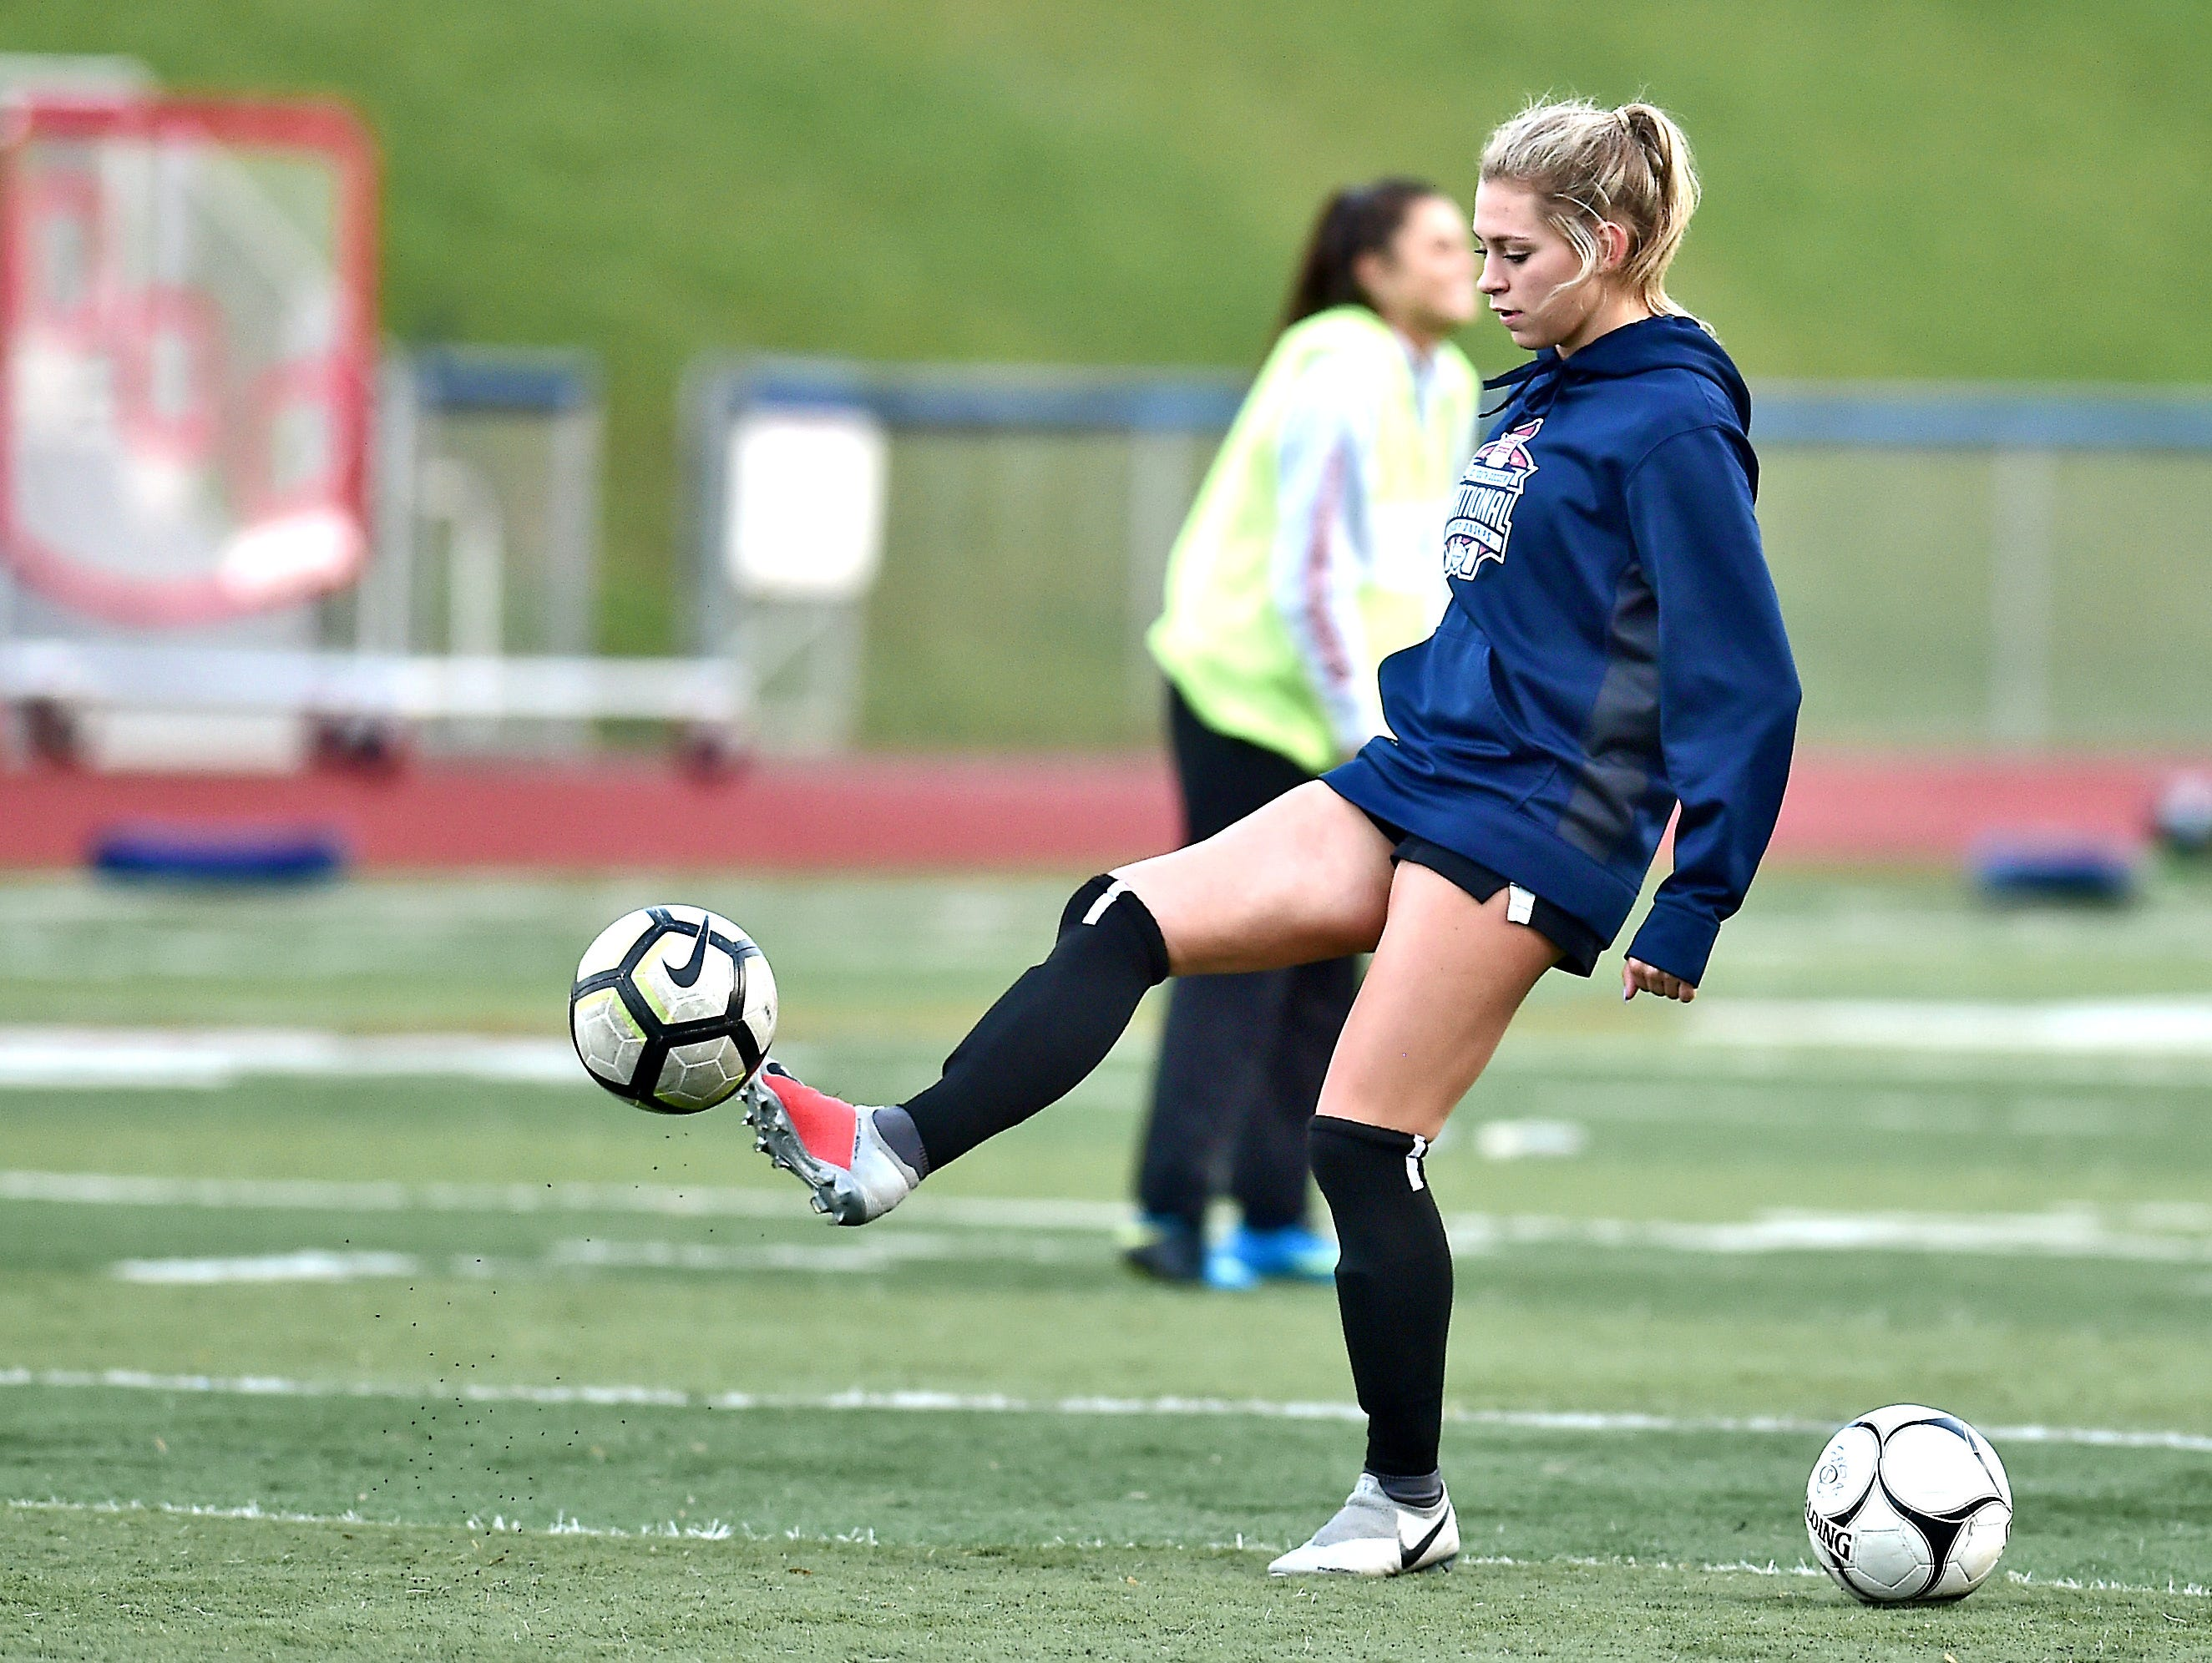 Lauren Ashman a junior soccer athlete at Chenango Forks High School, Athlete Of The Week, October 23, 2018.